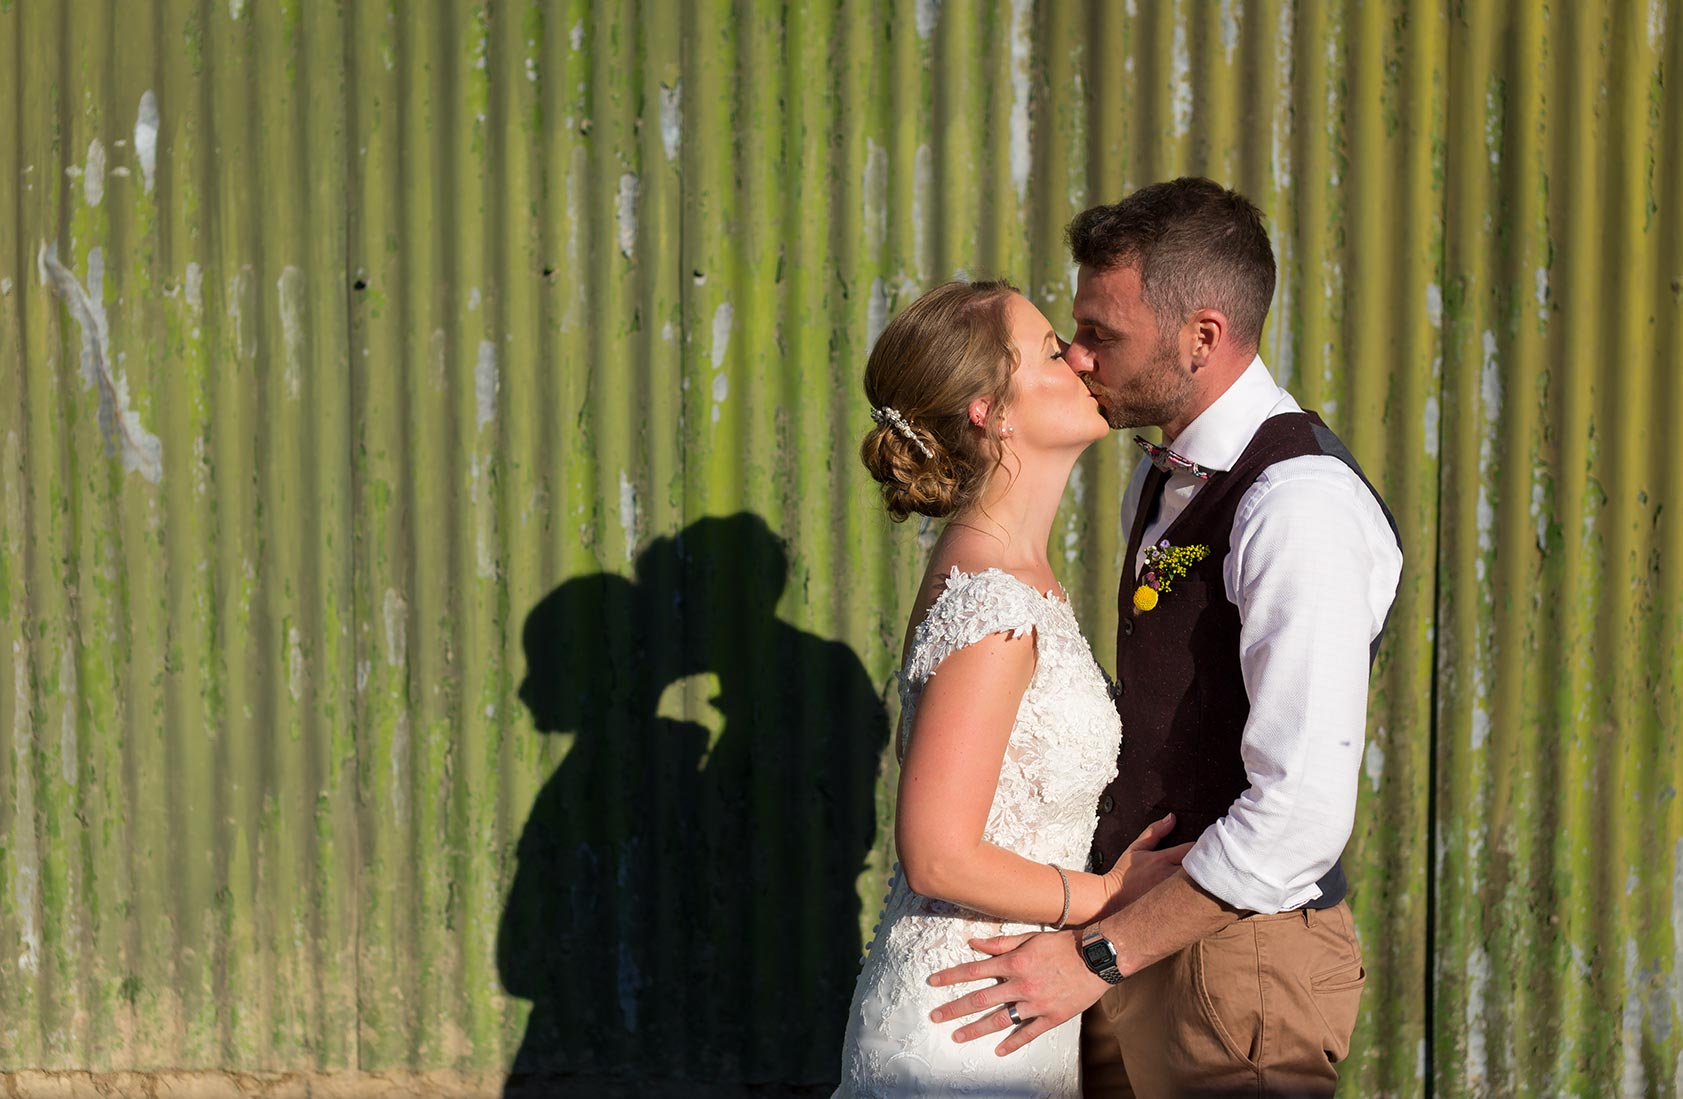 Madehurst Wedding – Matt and Megan.